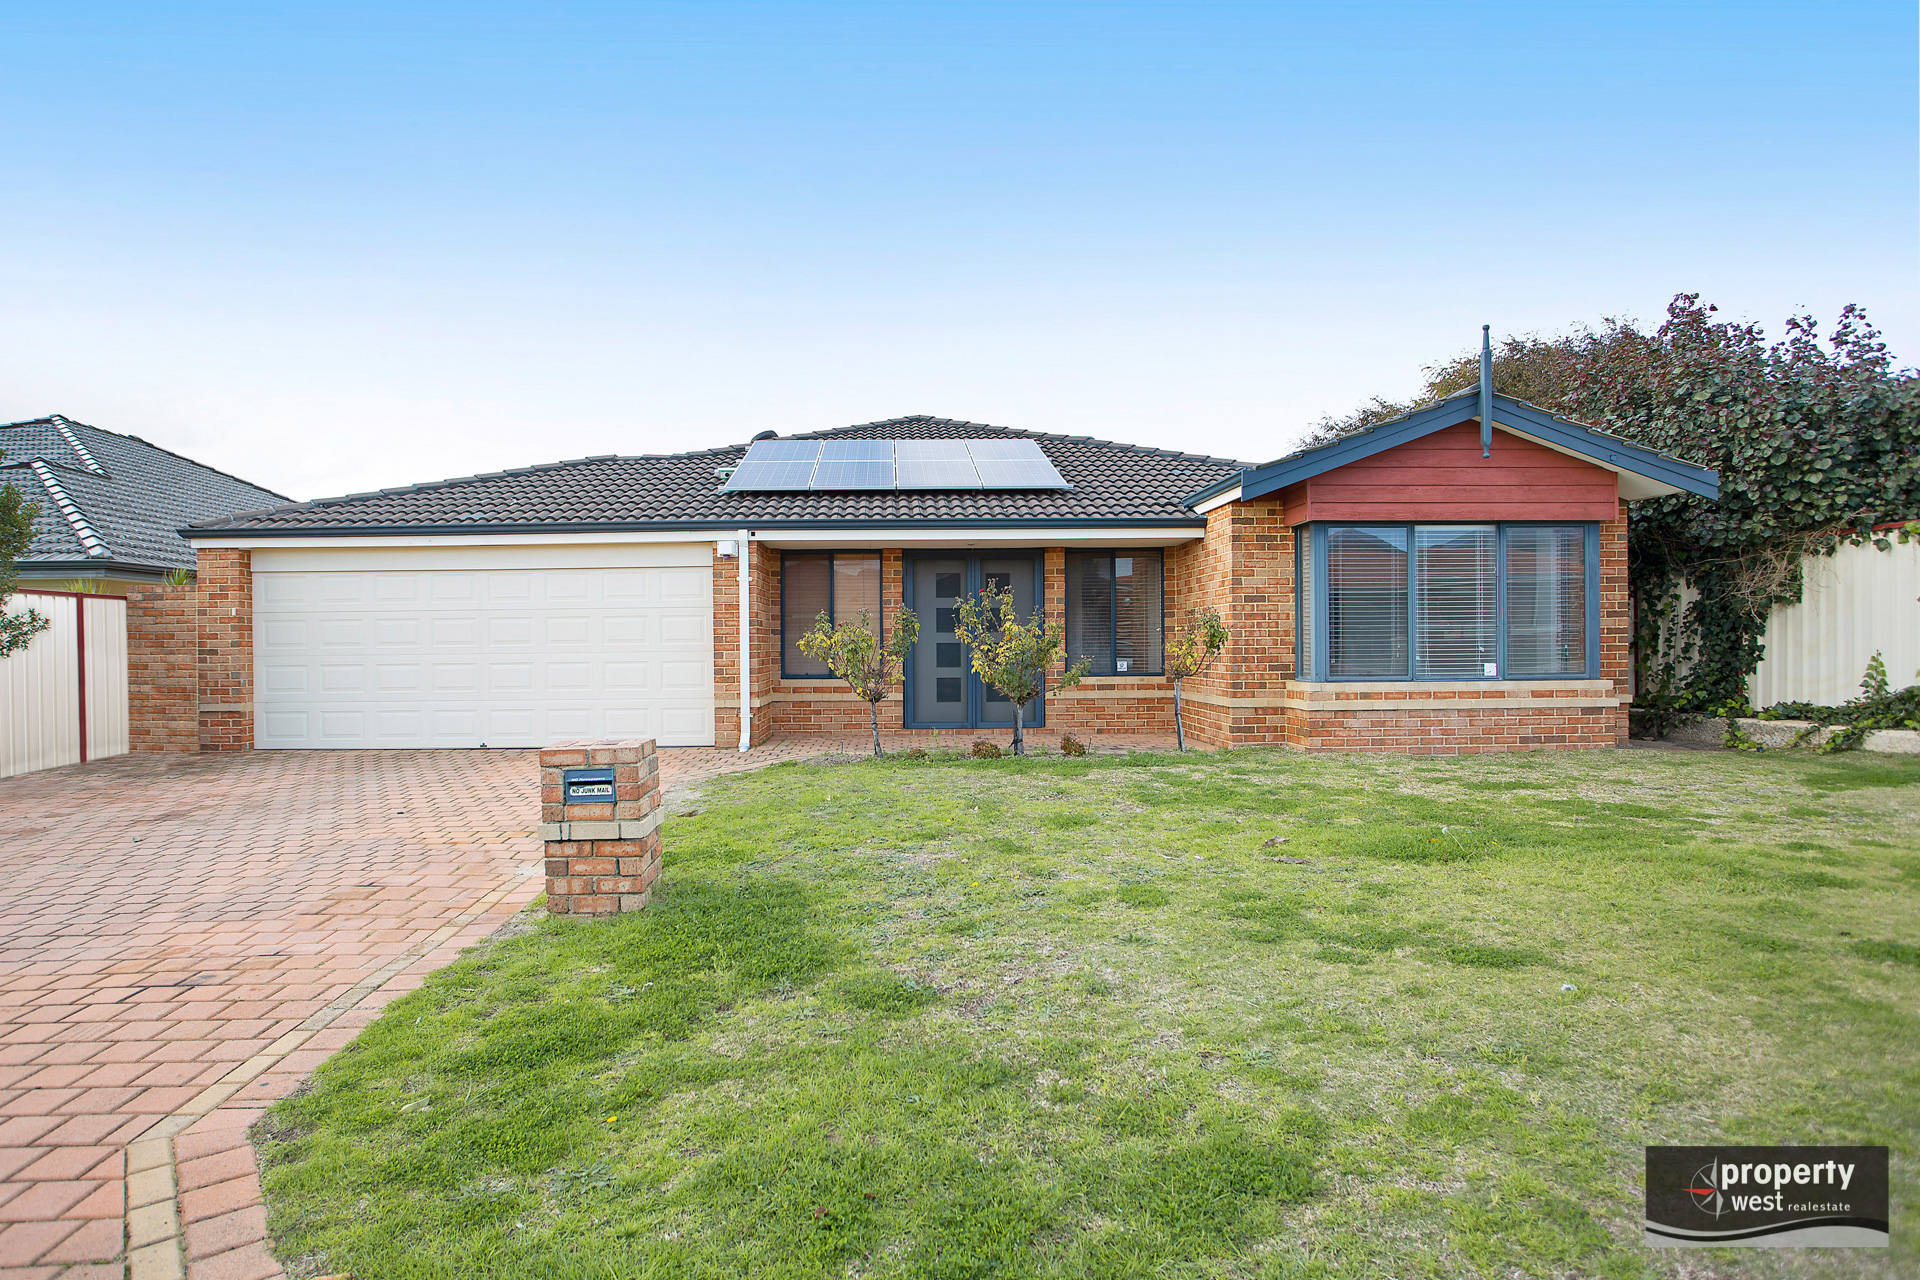 GREAT SIZED FAMILY HOME AVAILABLE NOW!